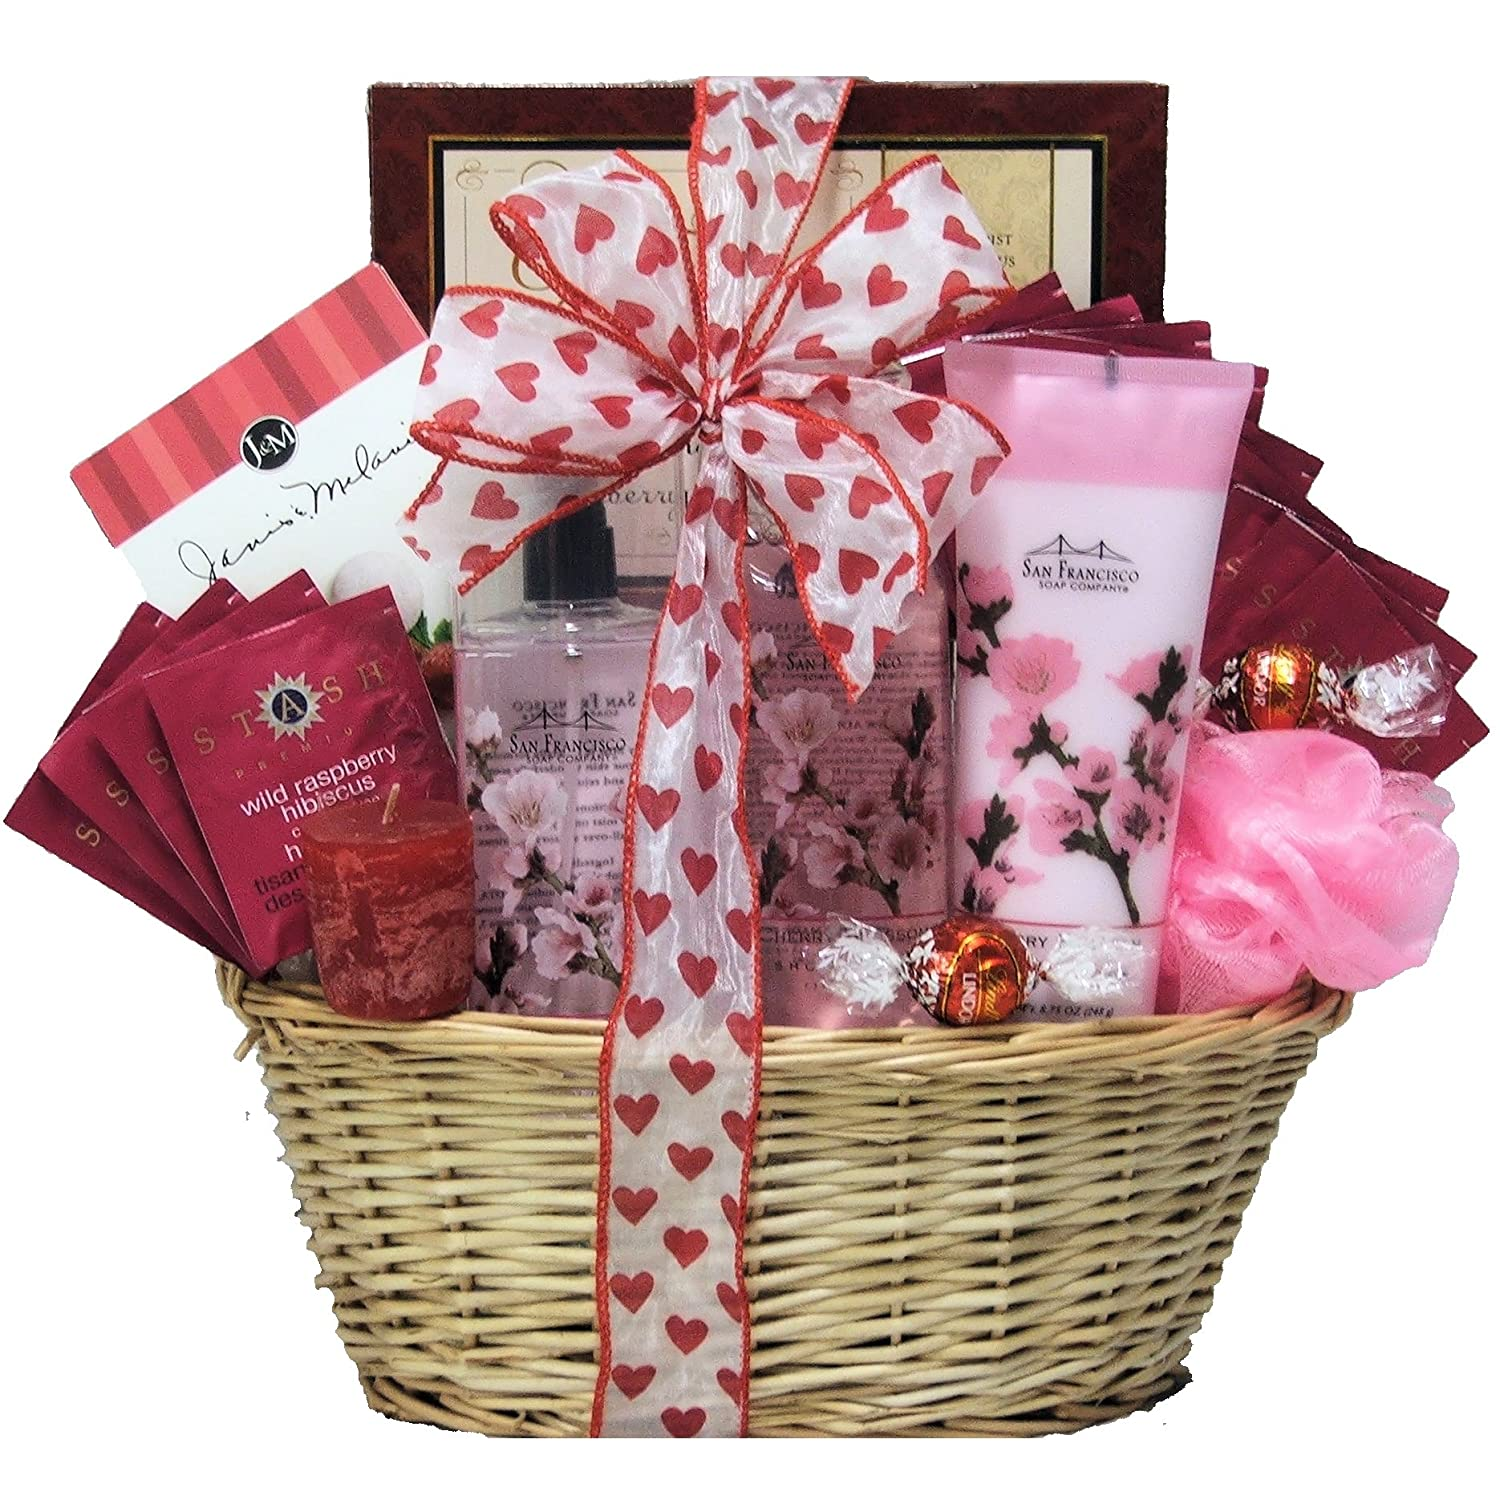 Amazon.com : GreatArrivals Gift Baskets Spa Retreat Valentine's ...